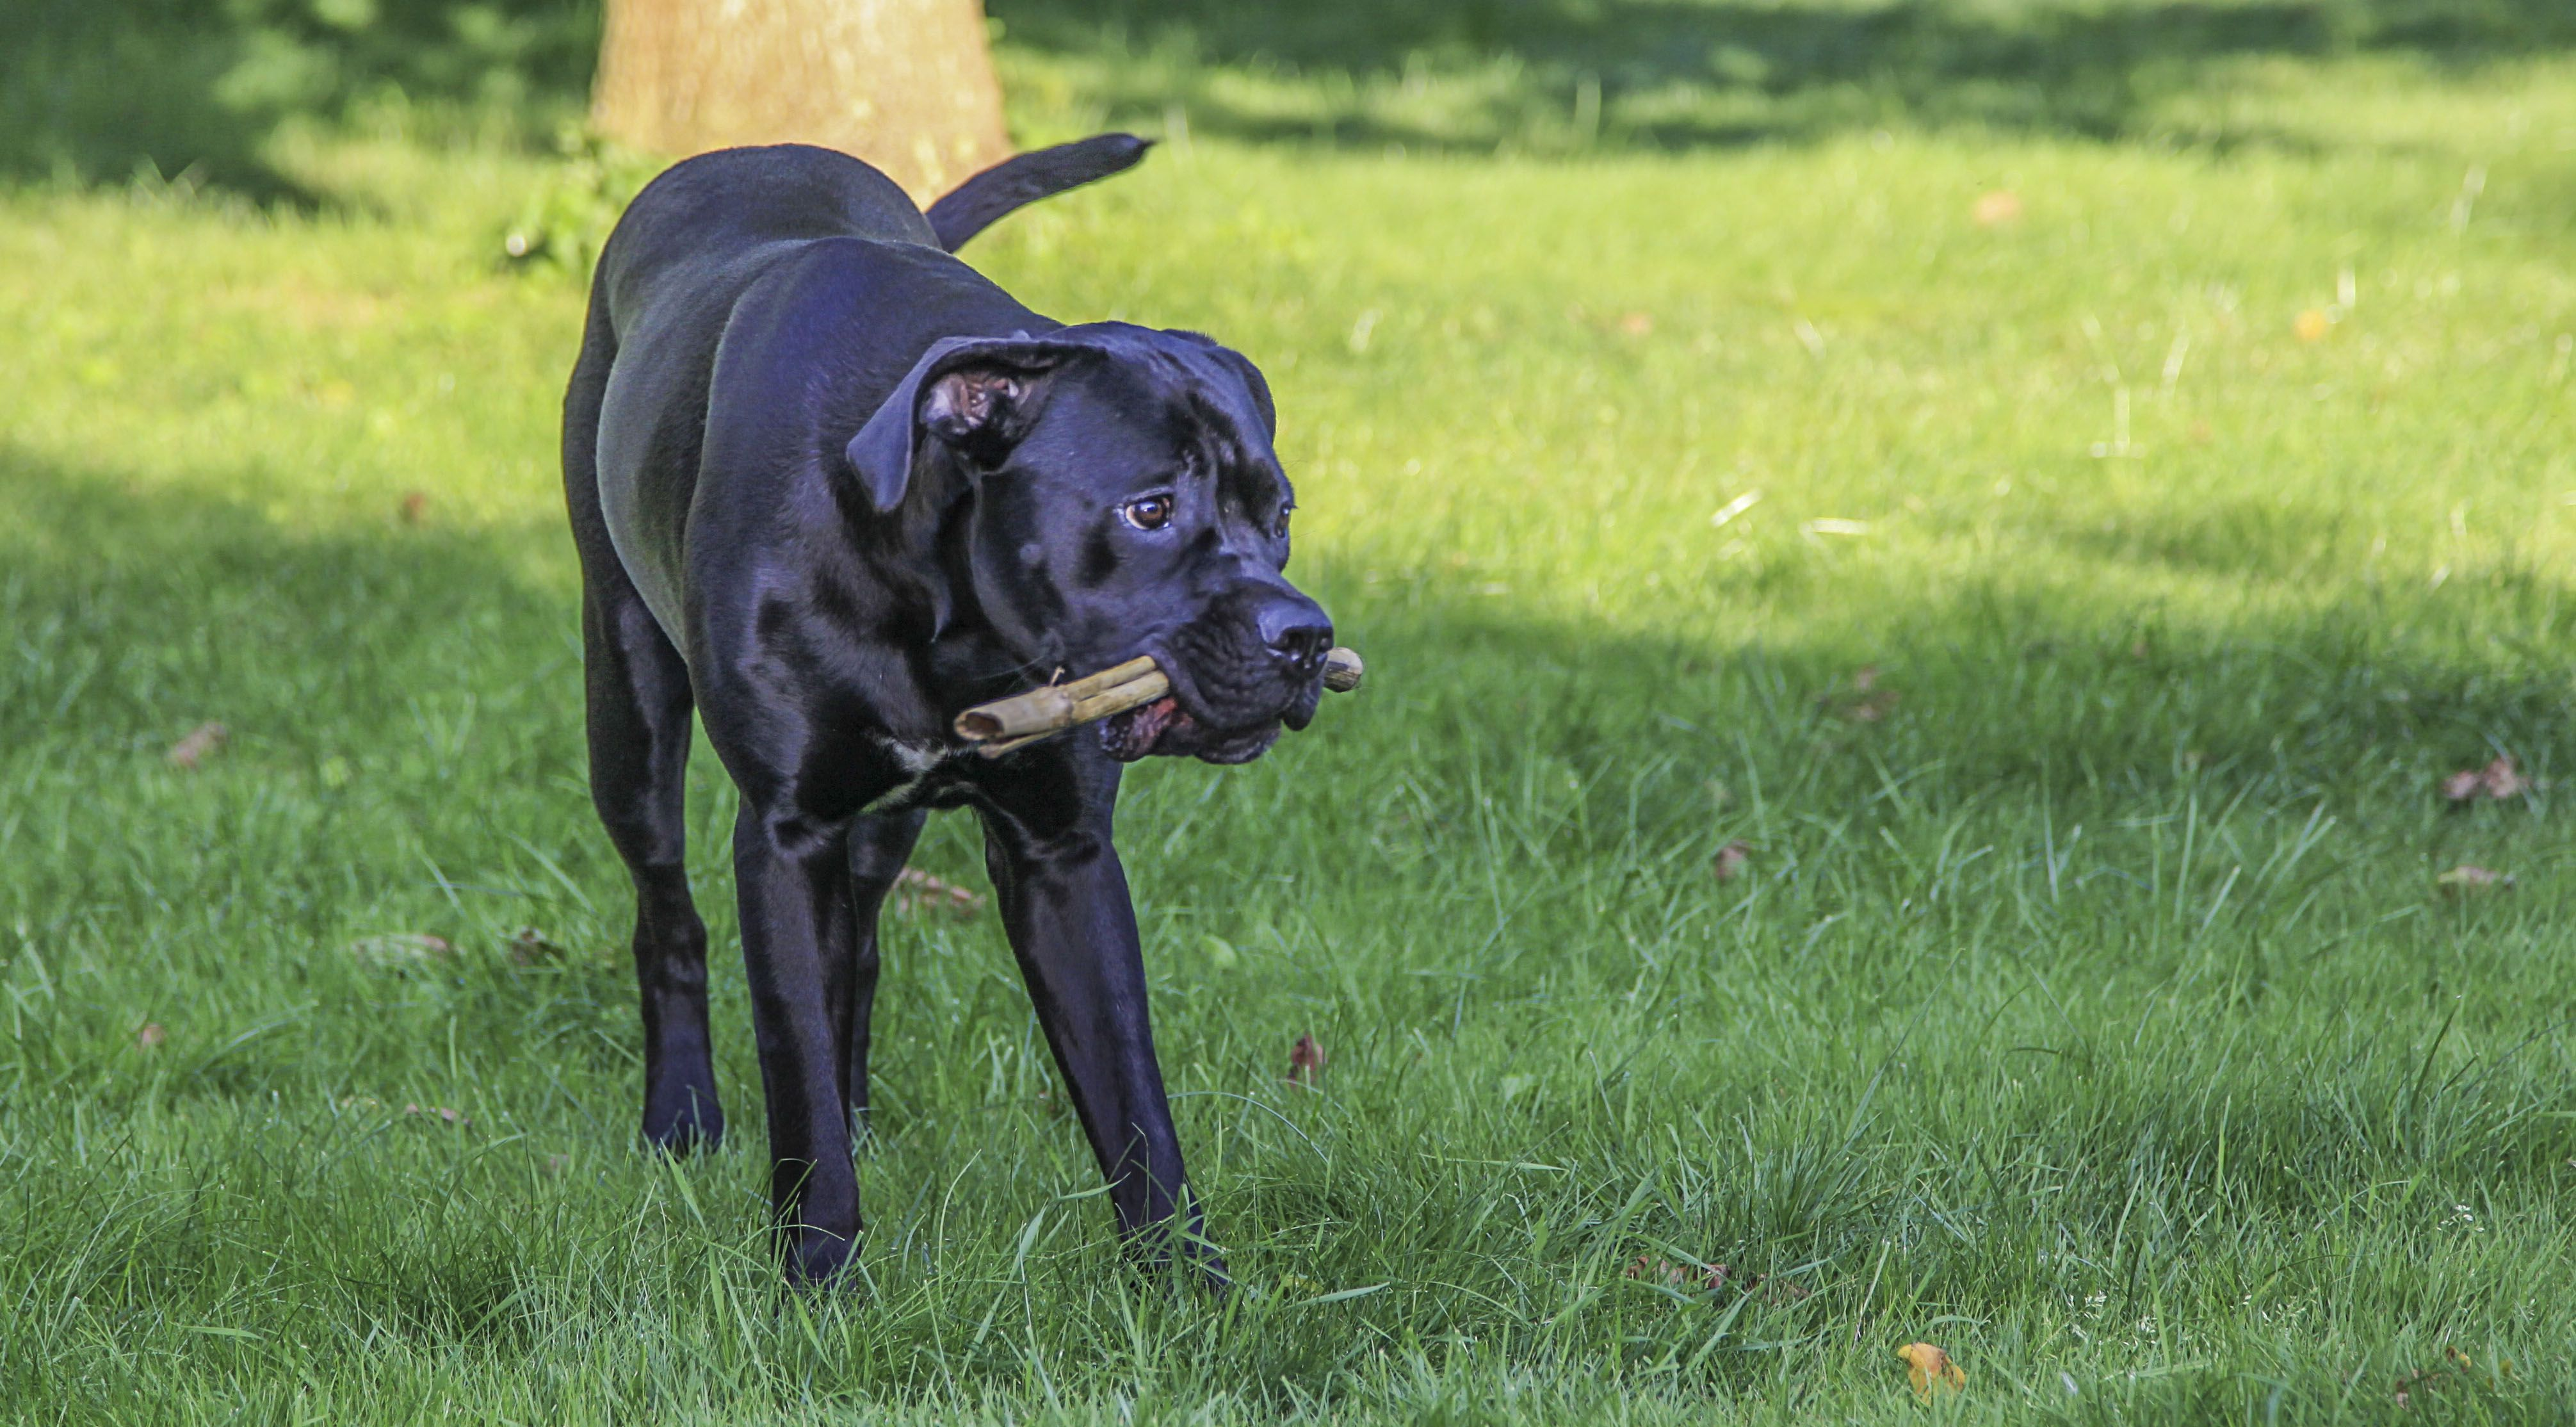 Pin By Stephanie West On Ava In 2020 Cane Corso Dogs Panther